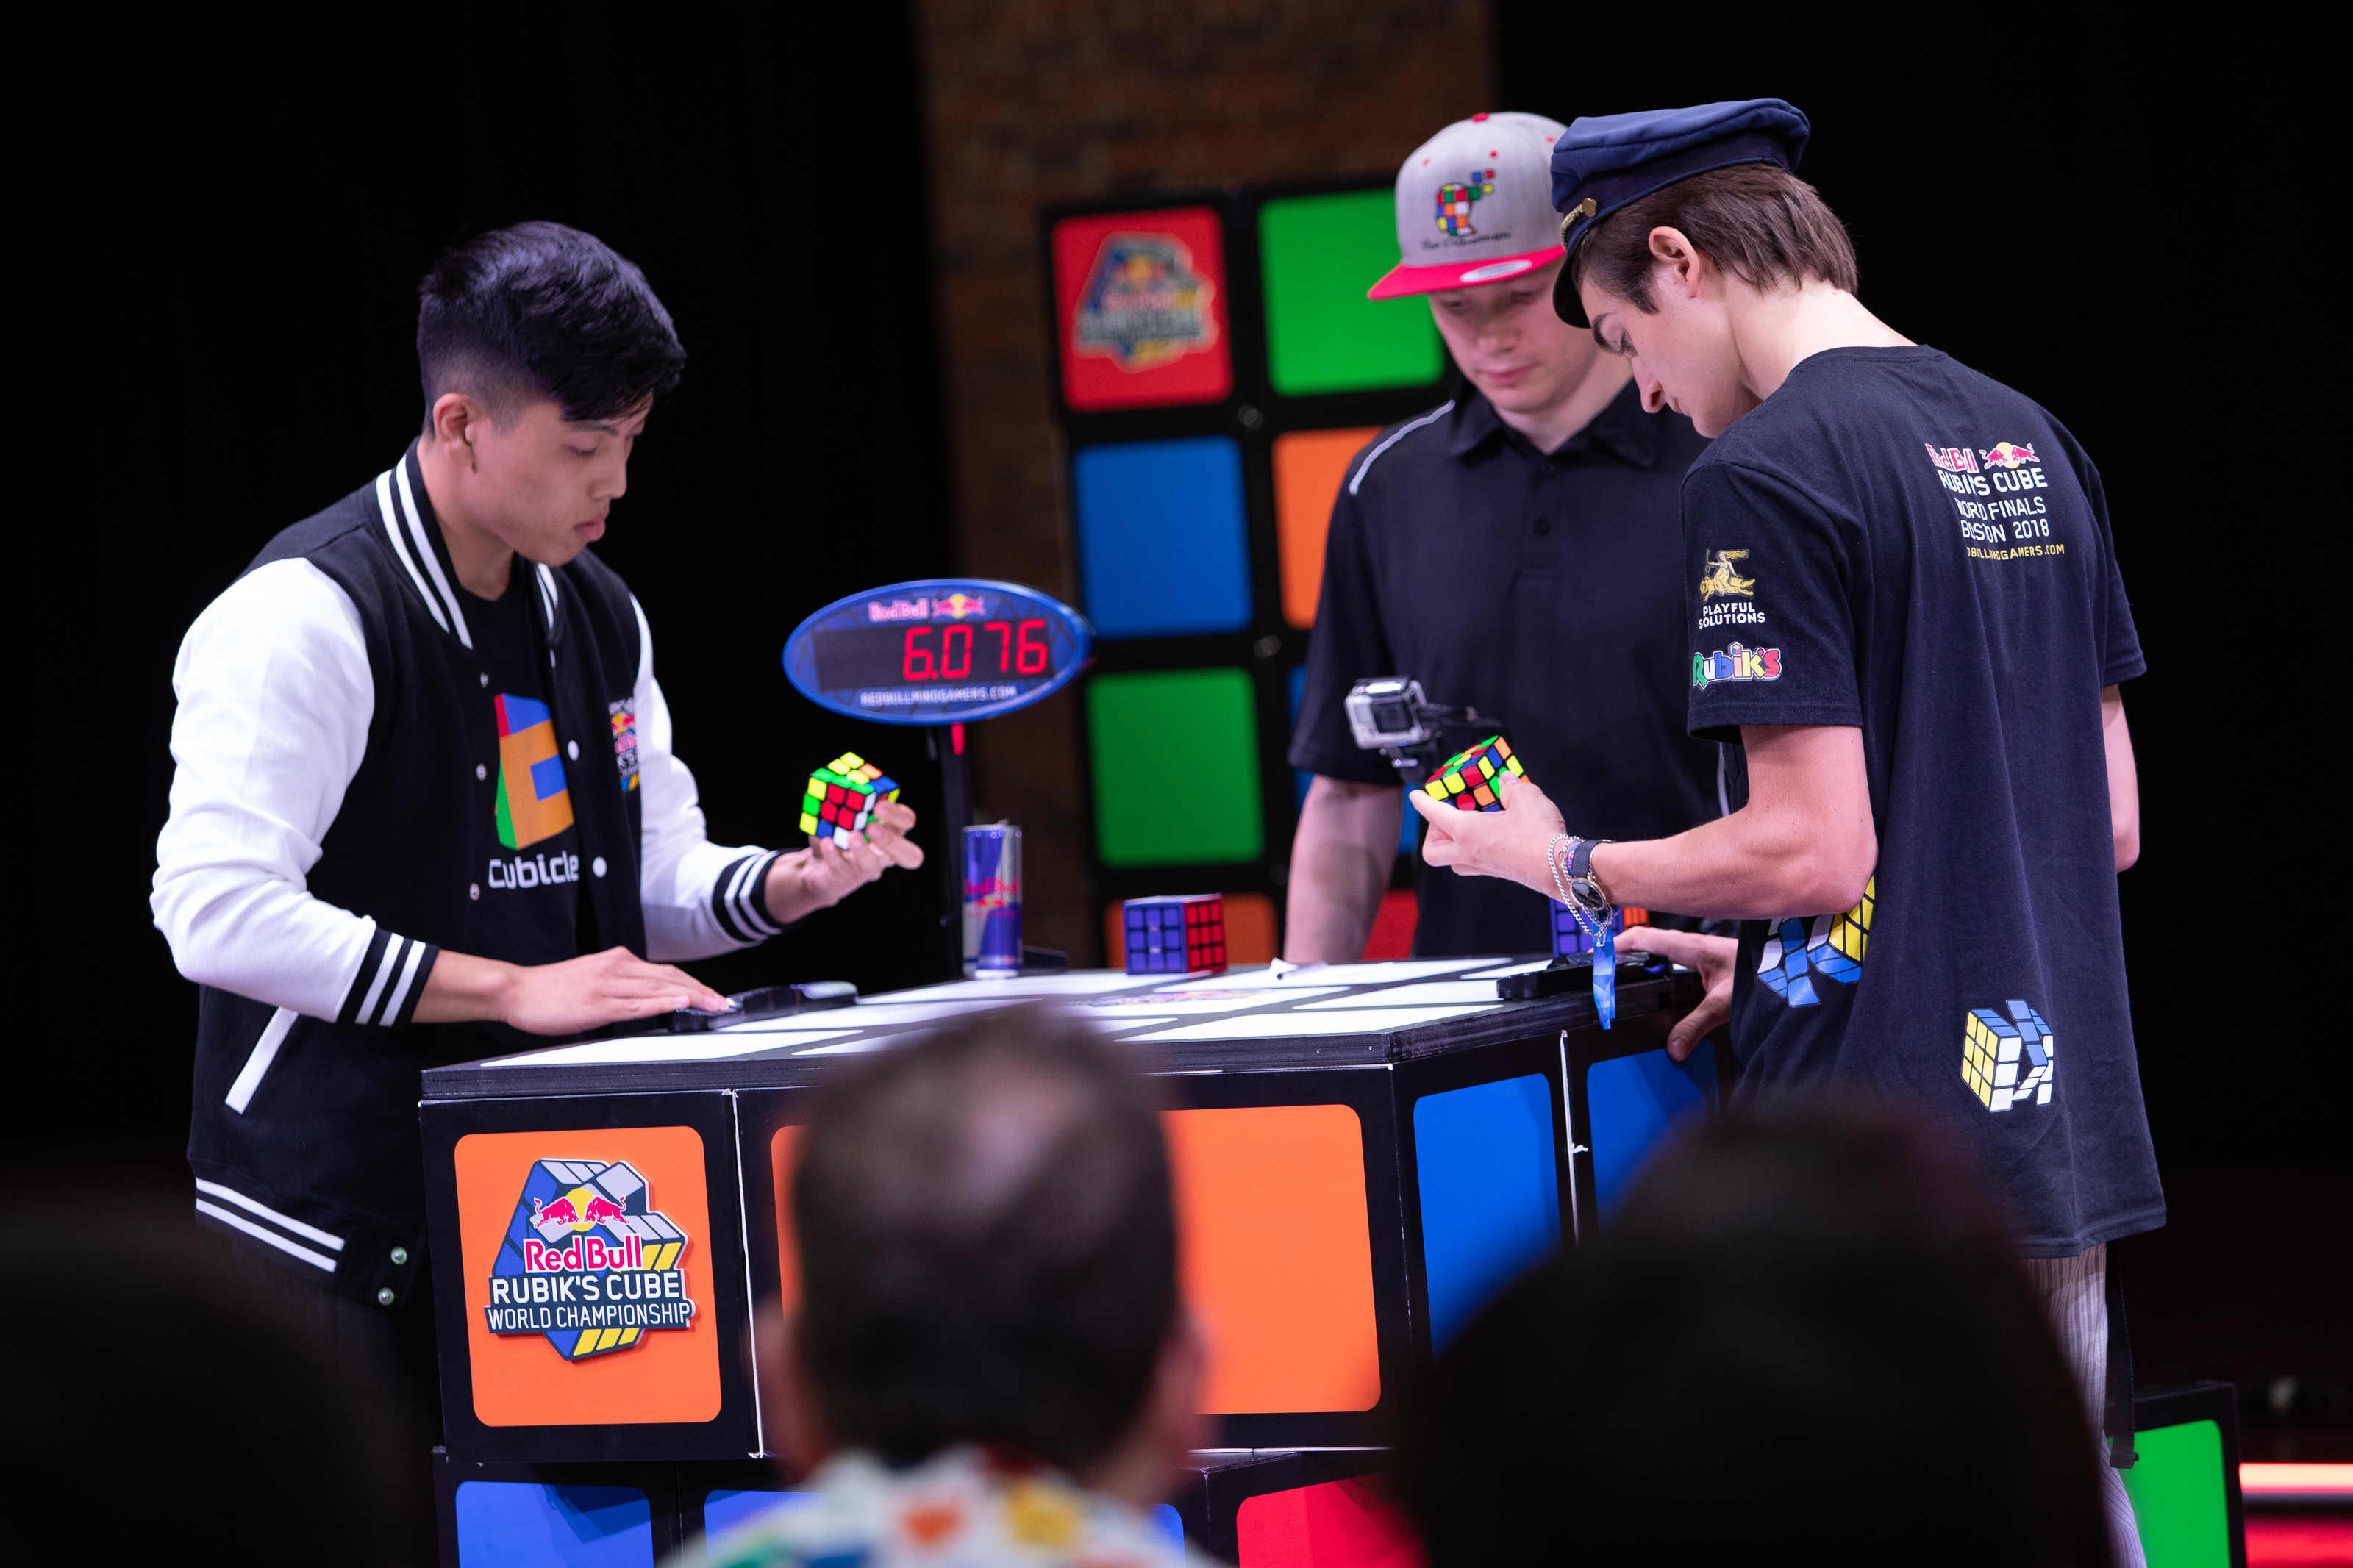 bill_wang_és_bózsing_hunor_red_bull_rubik_kocka_vb